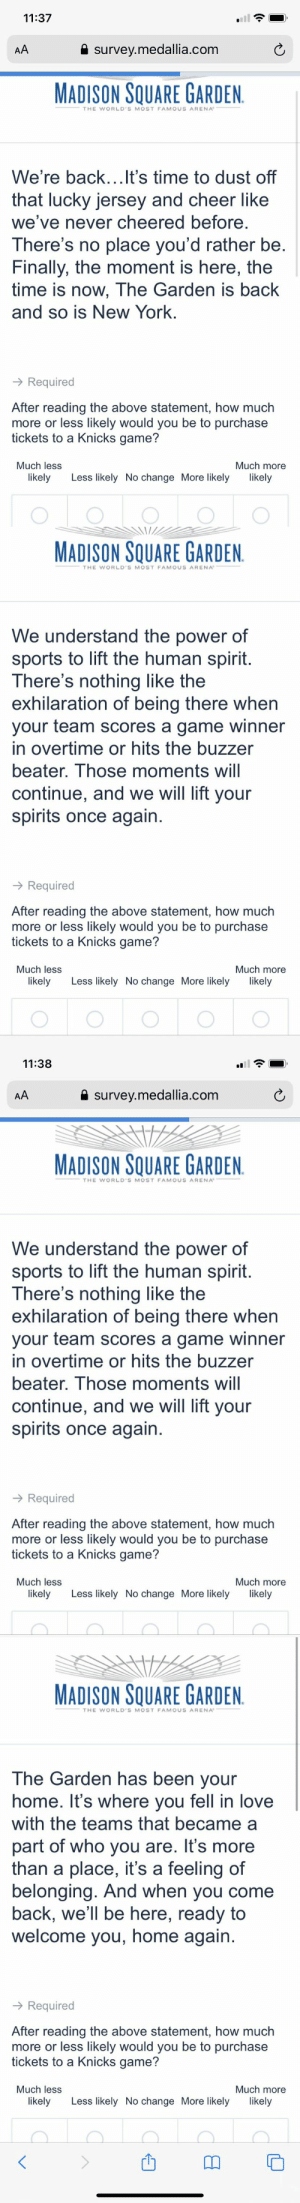 RT @KnicksMemes: Knicks PR has given up and is now sending fans surveys to tell them what they should say 😂 https://t.co/Dr04oKUZSM: RT @KnicksMemes: Knicks PR has given up and is now sending fans surveys to tell them what they should say 😂 https://t.co/Dr04oKUZSM